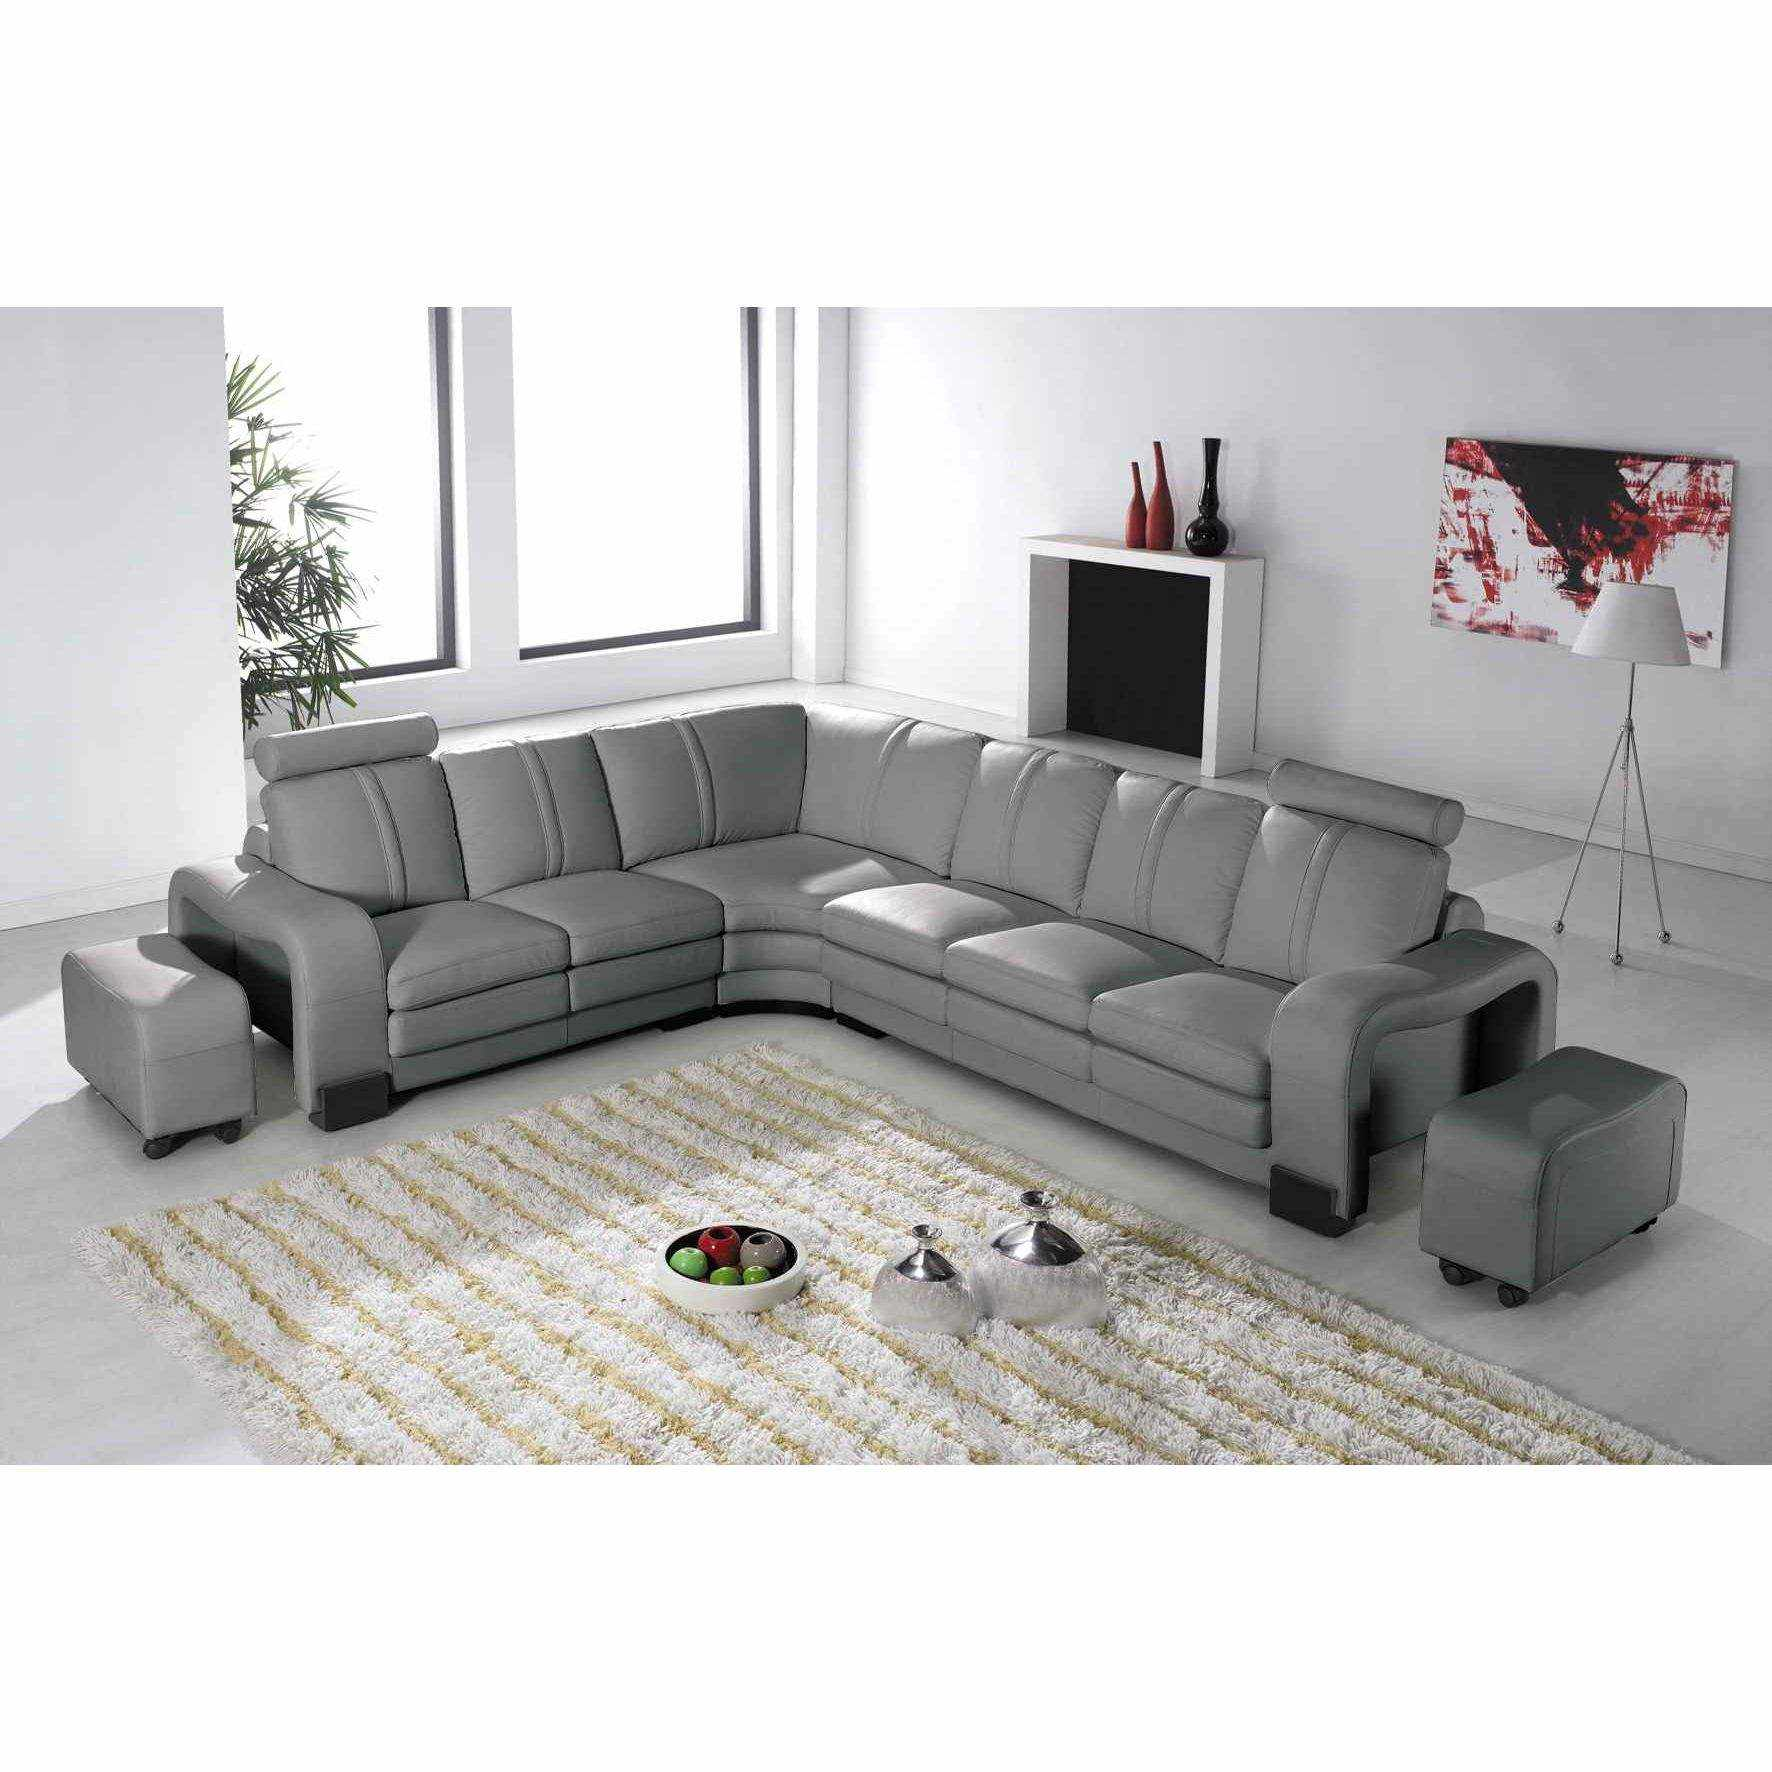 deco in paris 7 canape d angle en cuir gris avec appuie tete relax havane angle gauche can. Black Bedroom Furniture Sets. Home Design Ideas